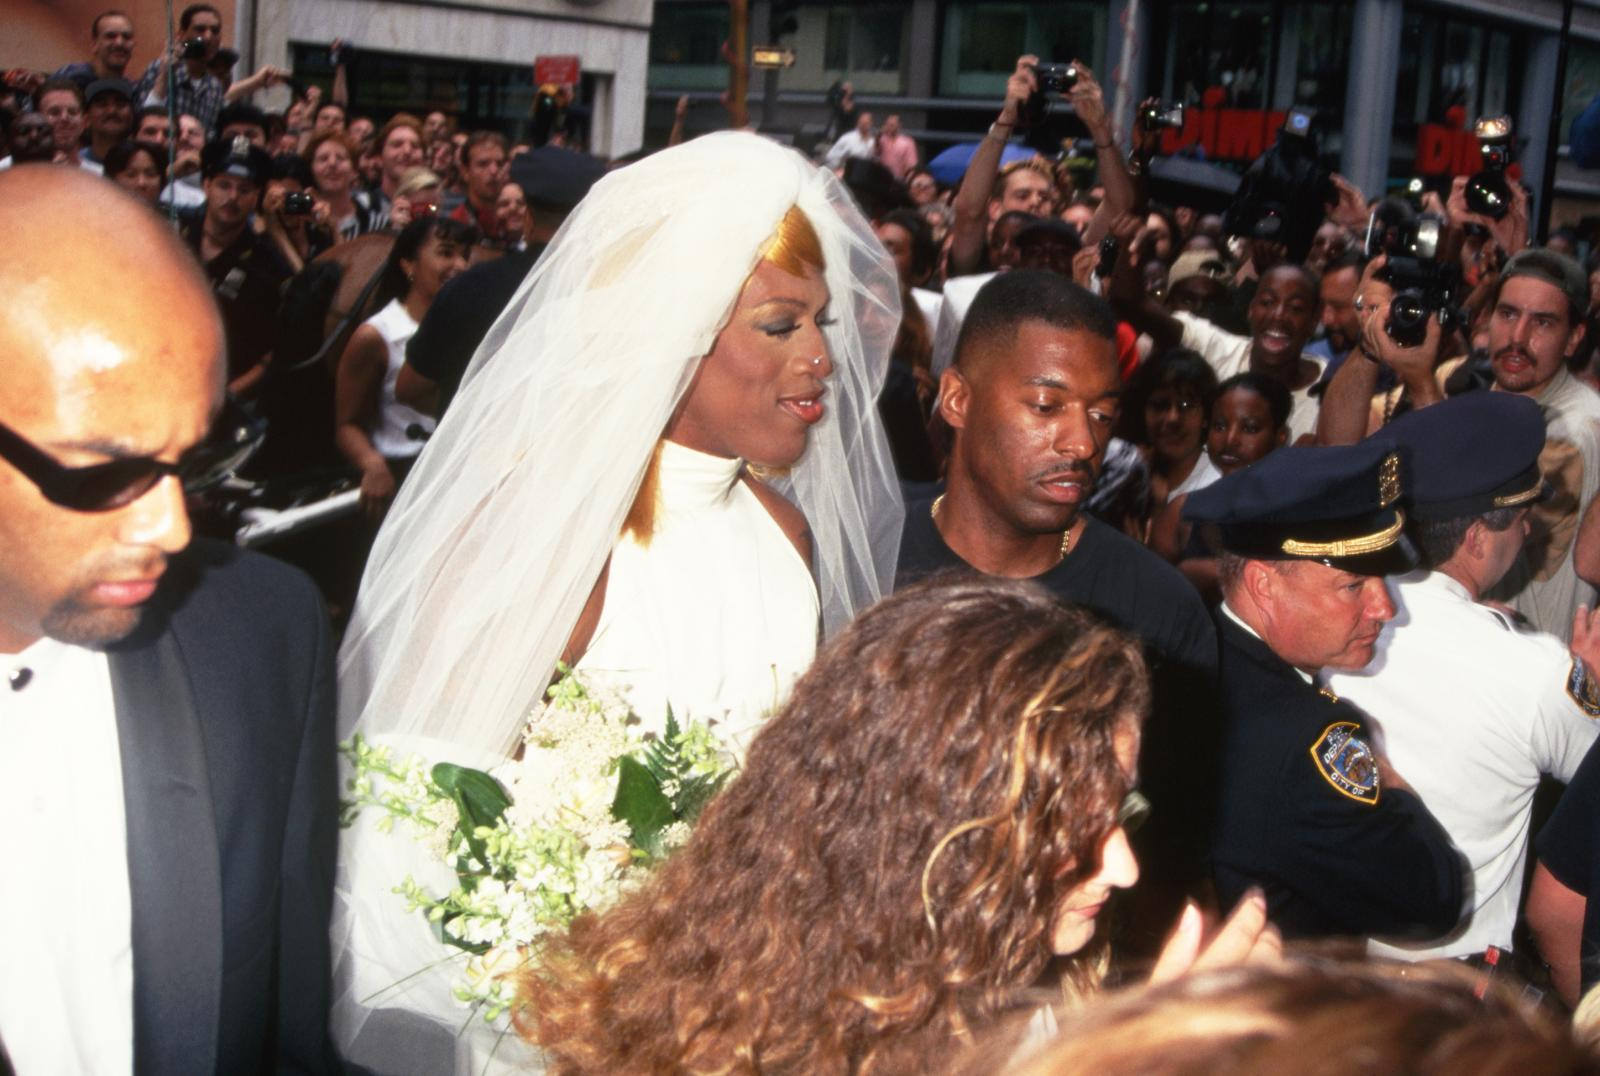 Dennis Rodman as a Bride in Rockefeller Center